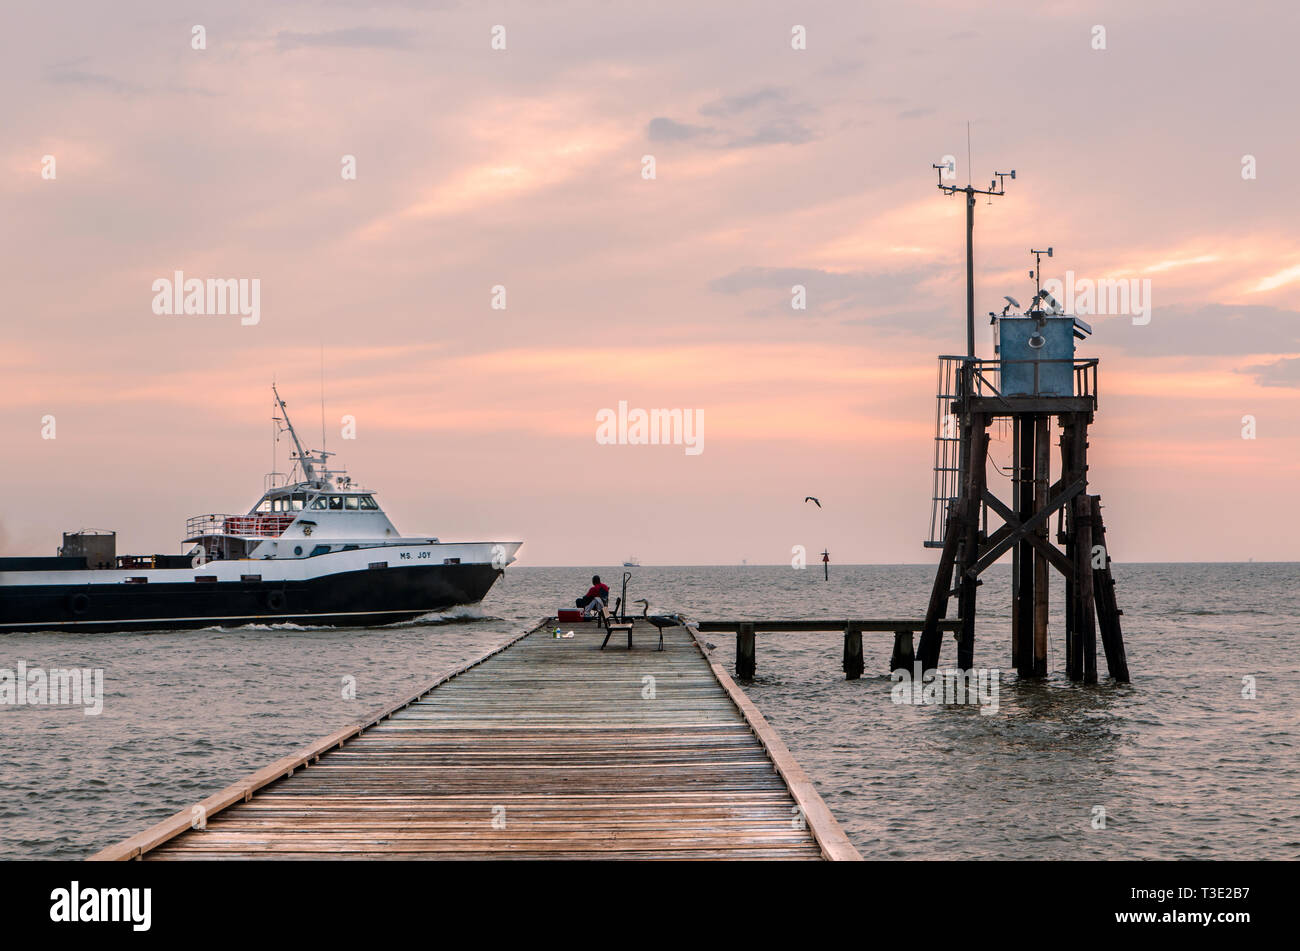 A Boat Passes A Fisherman At The Public Fishing Pier On The East End Of Dauphin Island Alabama Near Fort Gaines Stock Photo Alamy